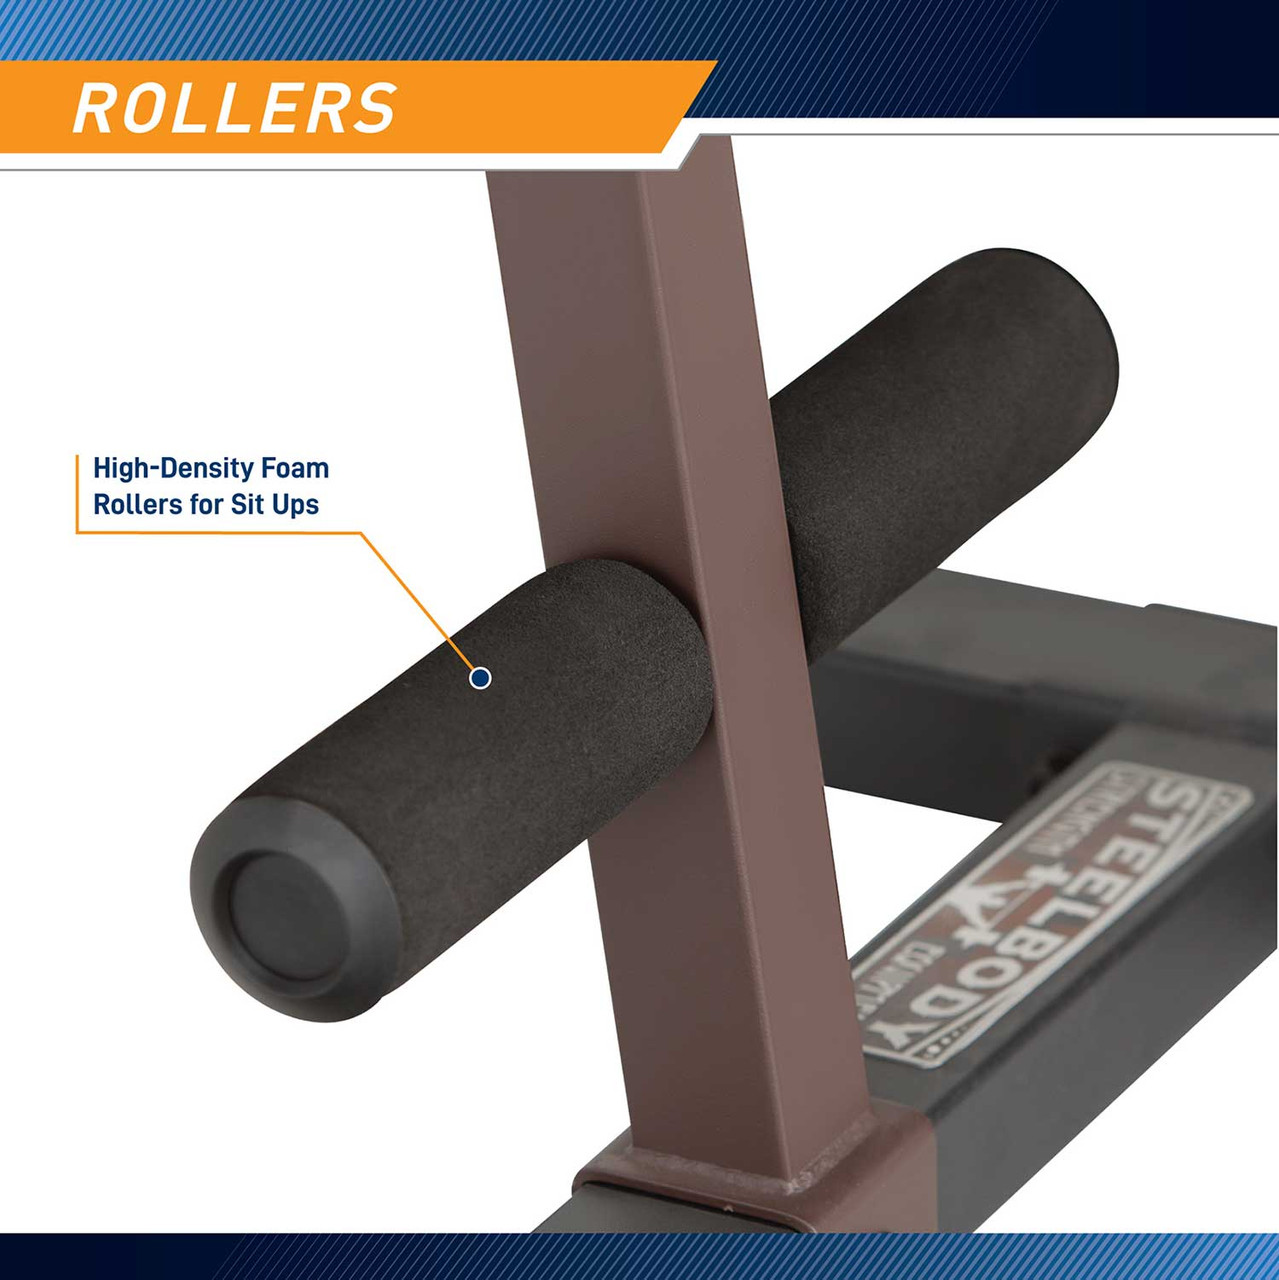 The Power Tower SteelBody STB-98501 includes padded foam rollers for sit ups